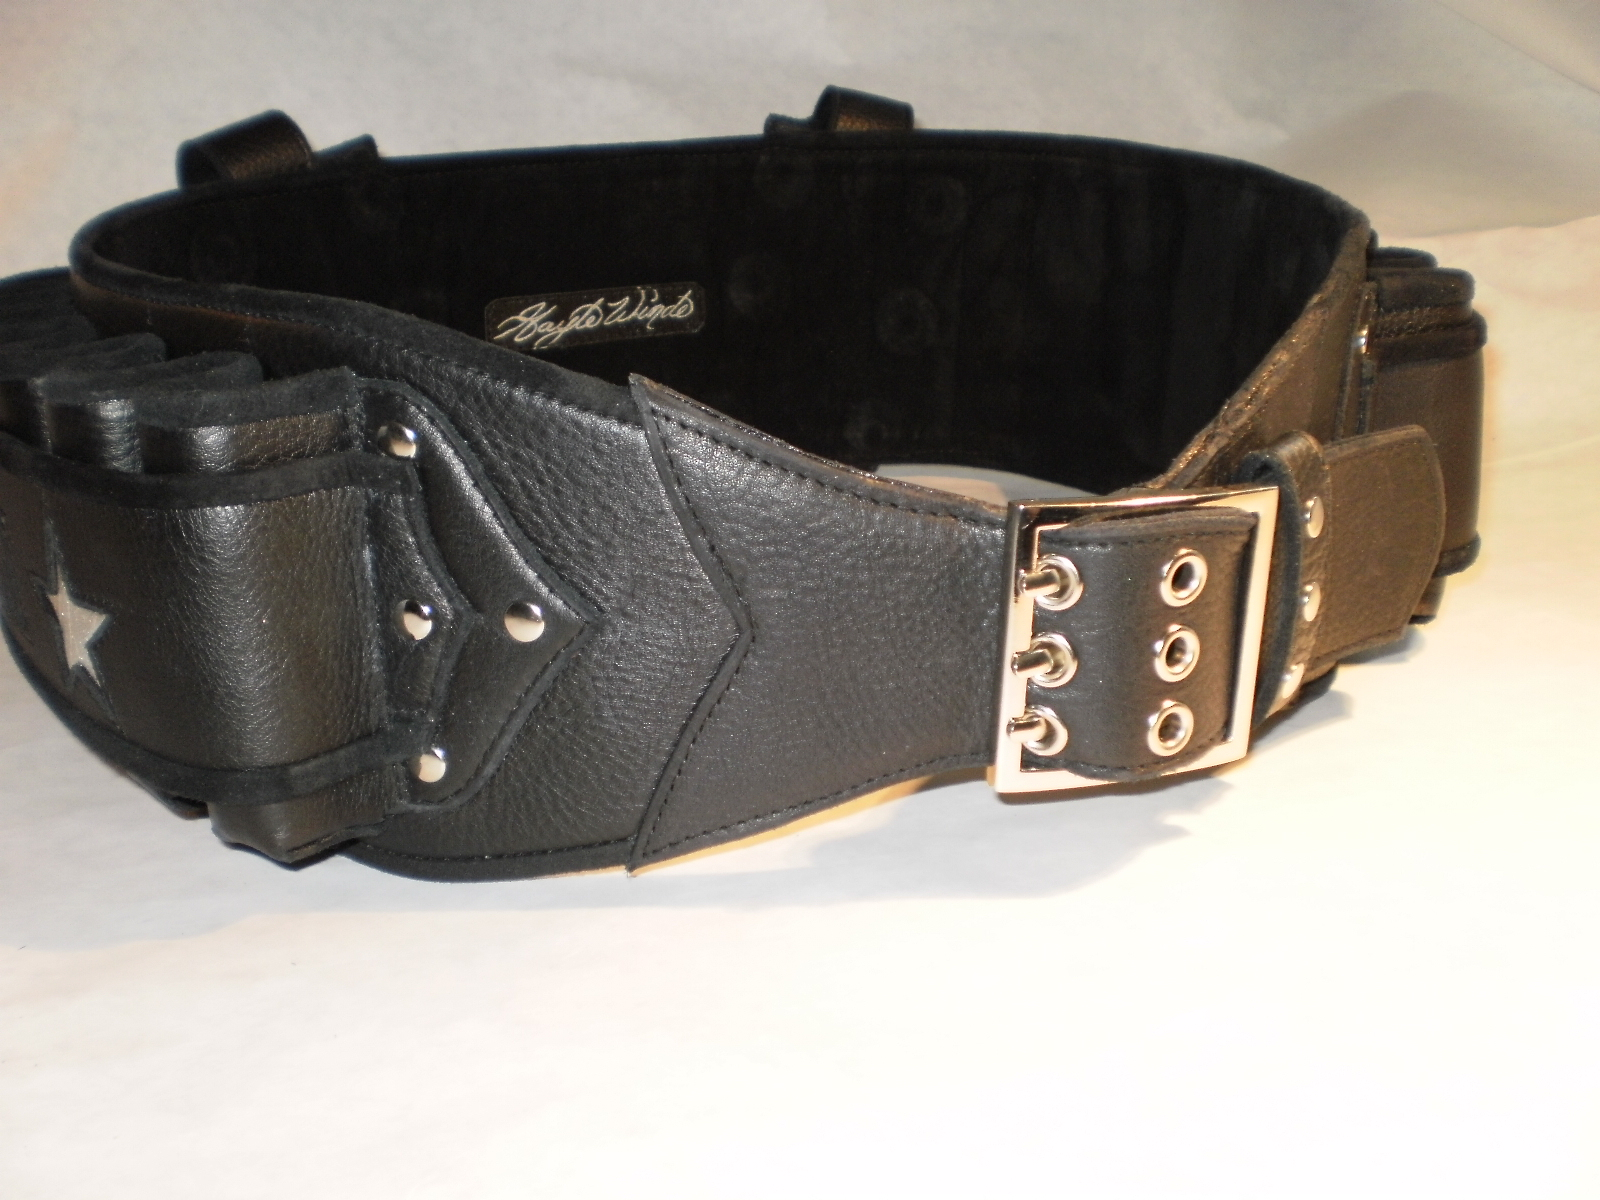 woh gear guide gayle winde custom harmonica belts